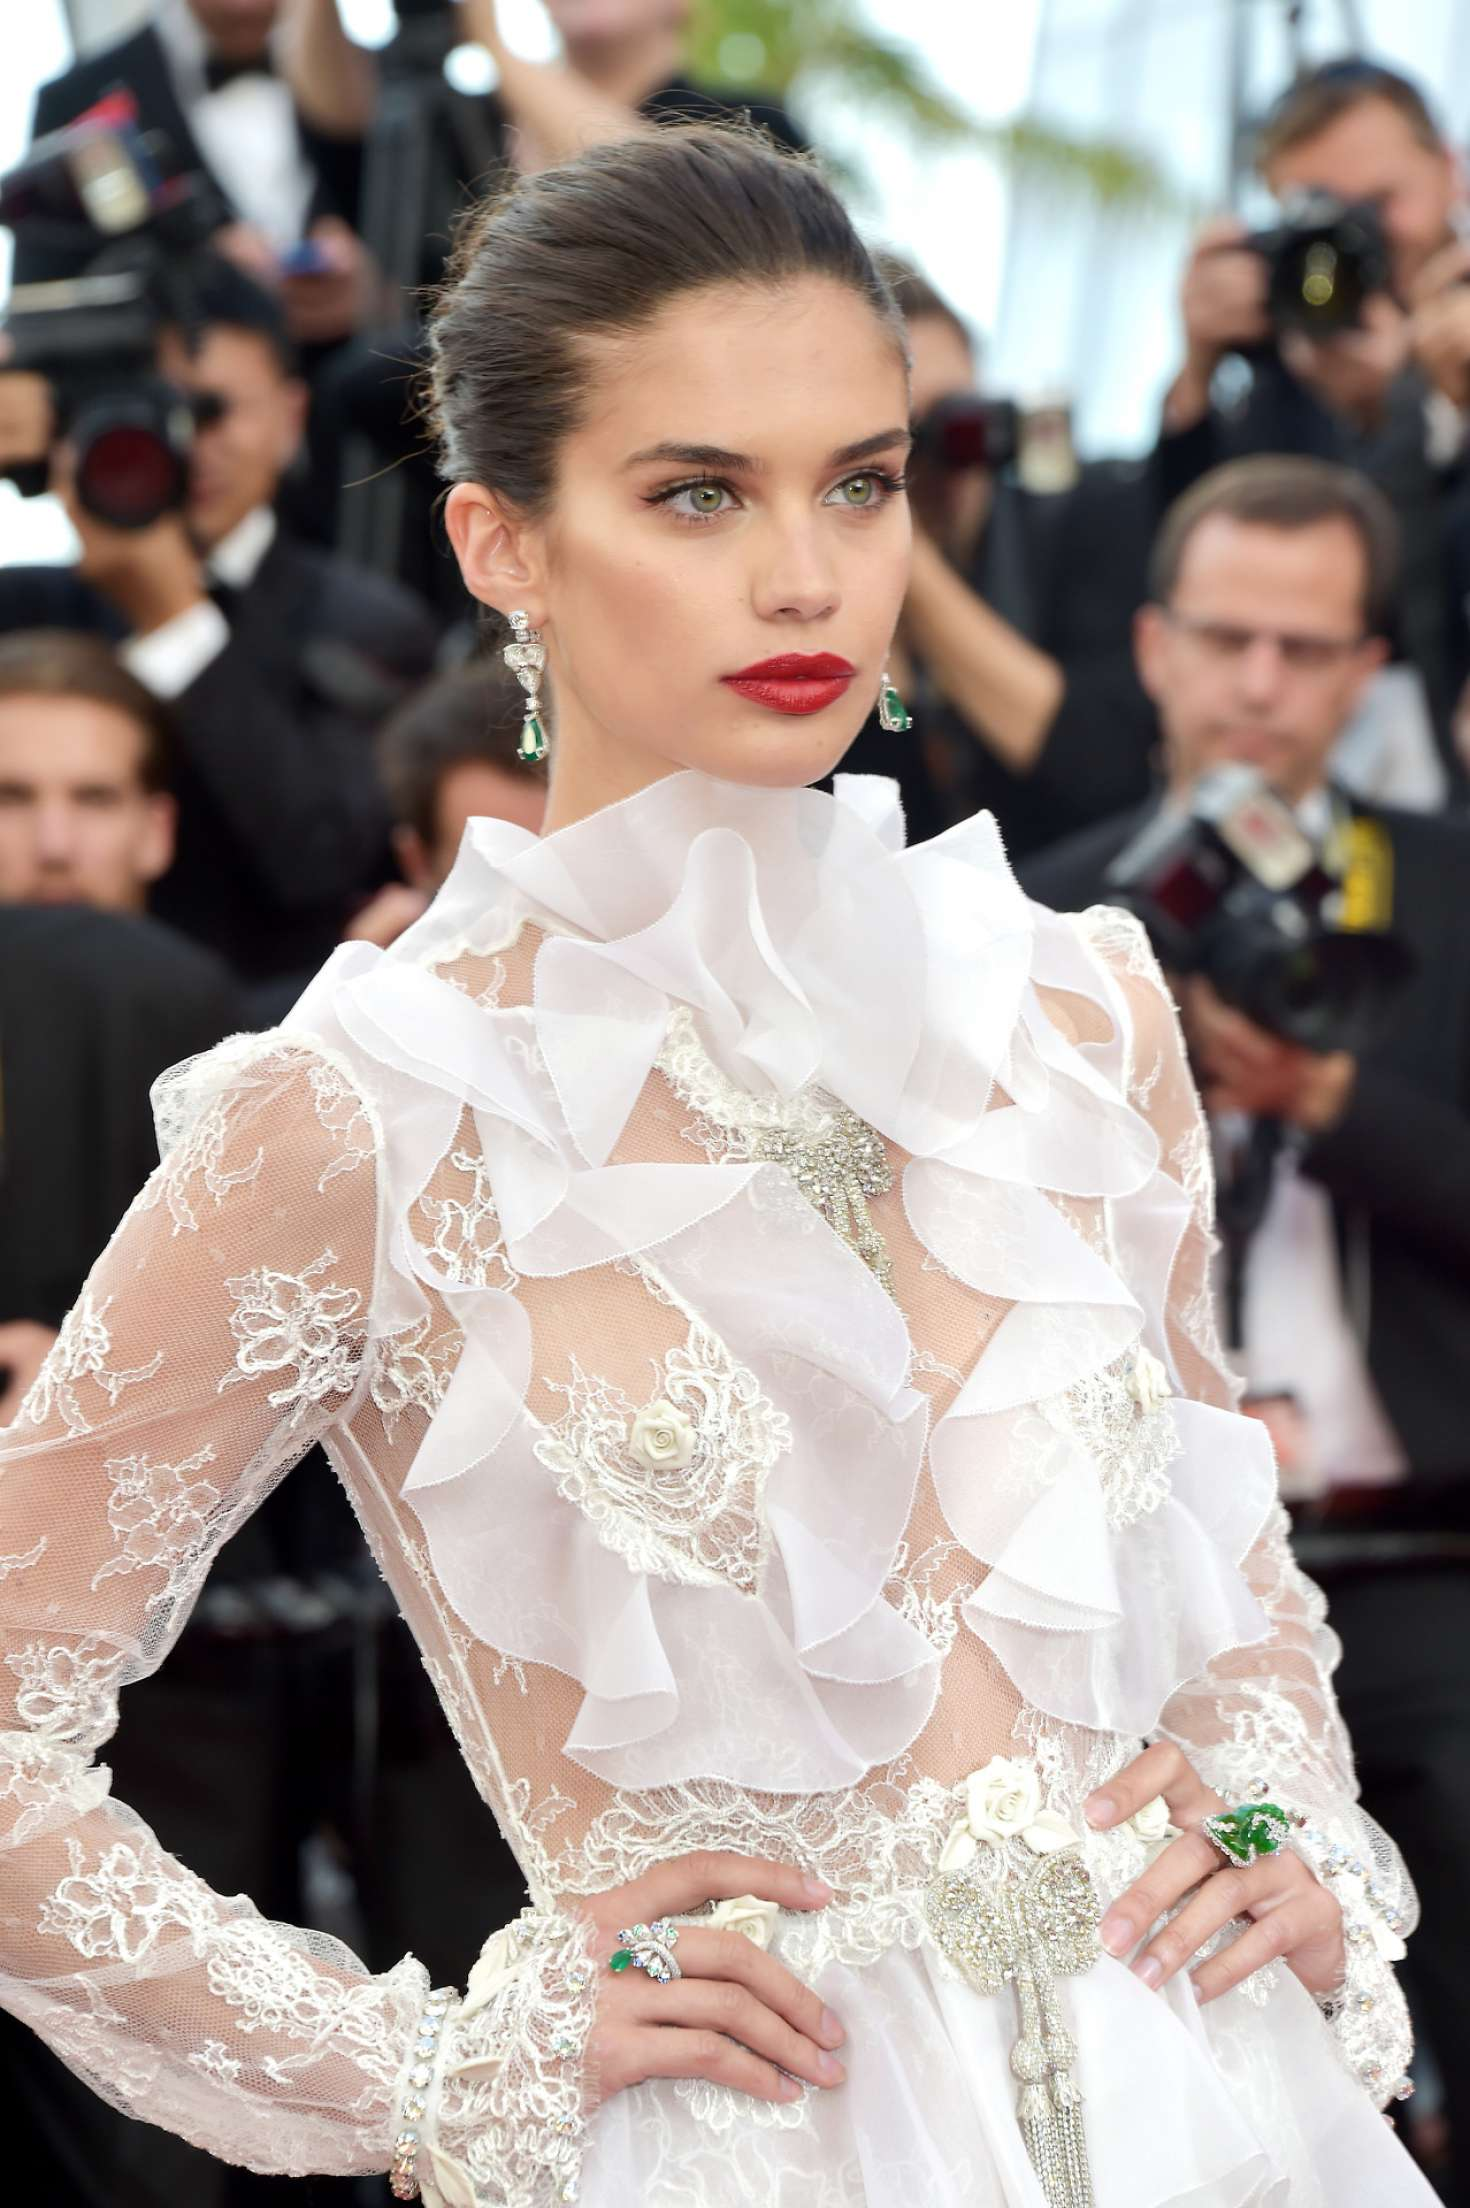 Sara Sampaio – 'The Killing of a Sacred Deer' Premiere at 70th Cannes Film Festival   Sara-Sampaio:-The-Killing-of-a-Sacred-Deer-Premiere-at-70th-Cannes-Film-Festival--06